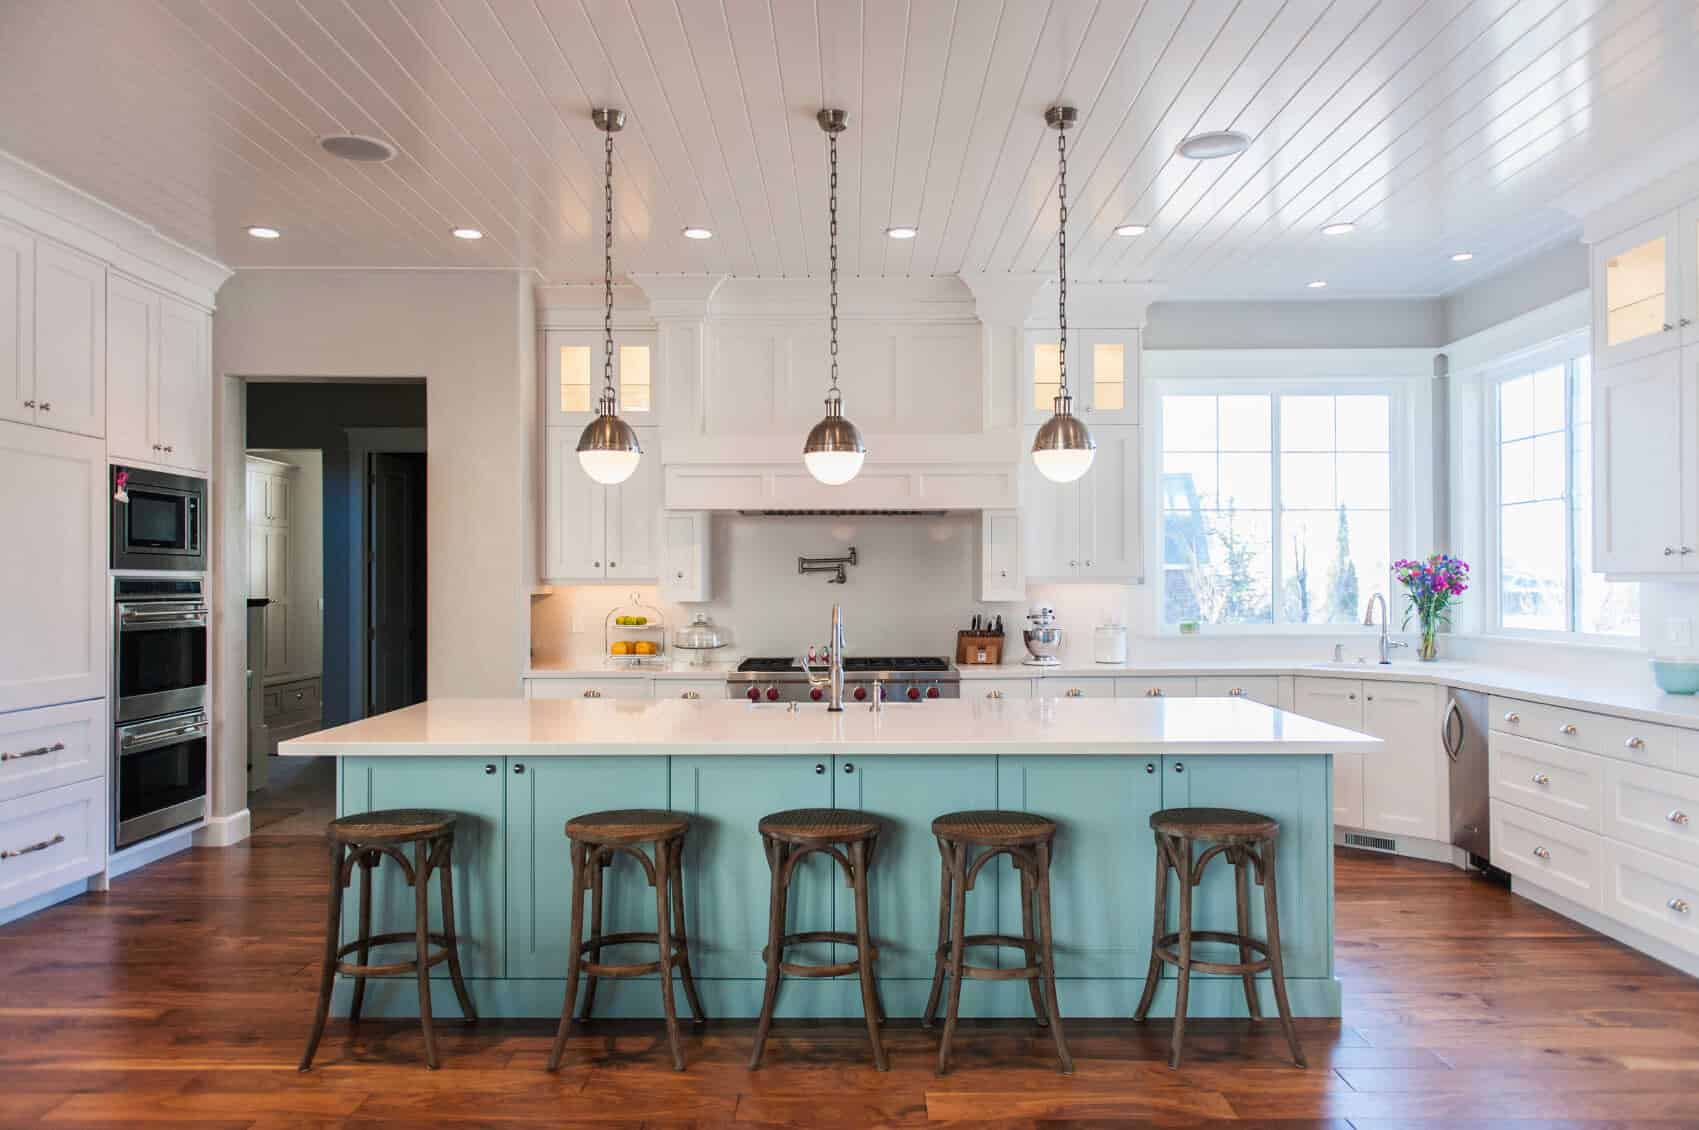 White U-shaped kitchen with pastel blue hues from the breakfast island bar, hardwood floors, and simple pendant lights.